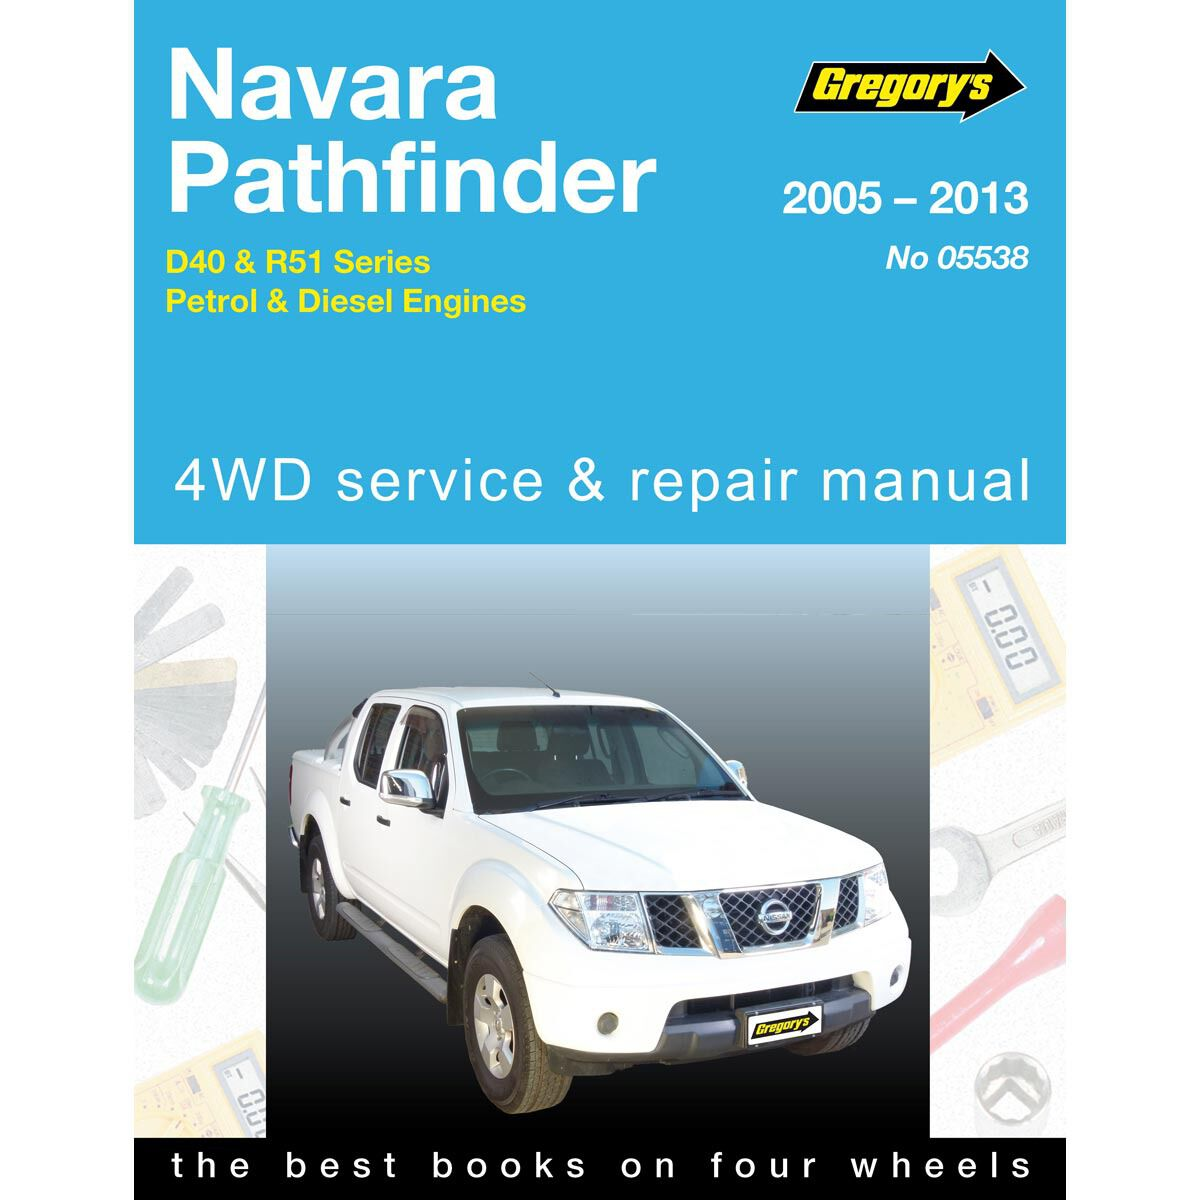 car manuals supercheap auto rh supercheapauto com au gregorys workshop manual pdf gregorys workshop manual toyota hilux